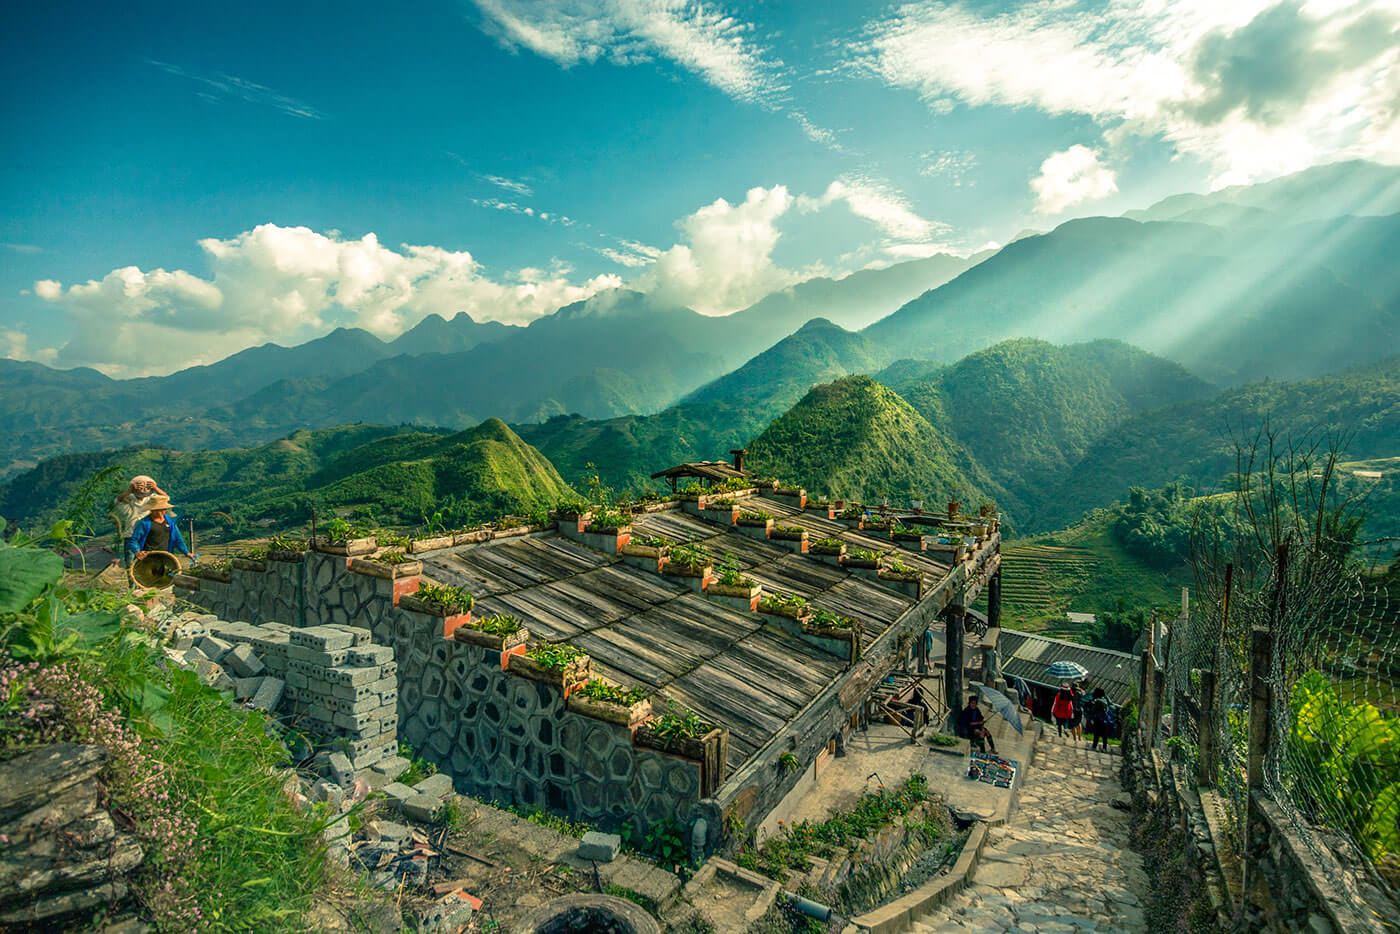 Cat Cat village – 1 among most beautiful places should be visited in COVID-19